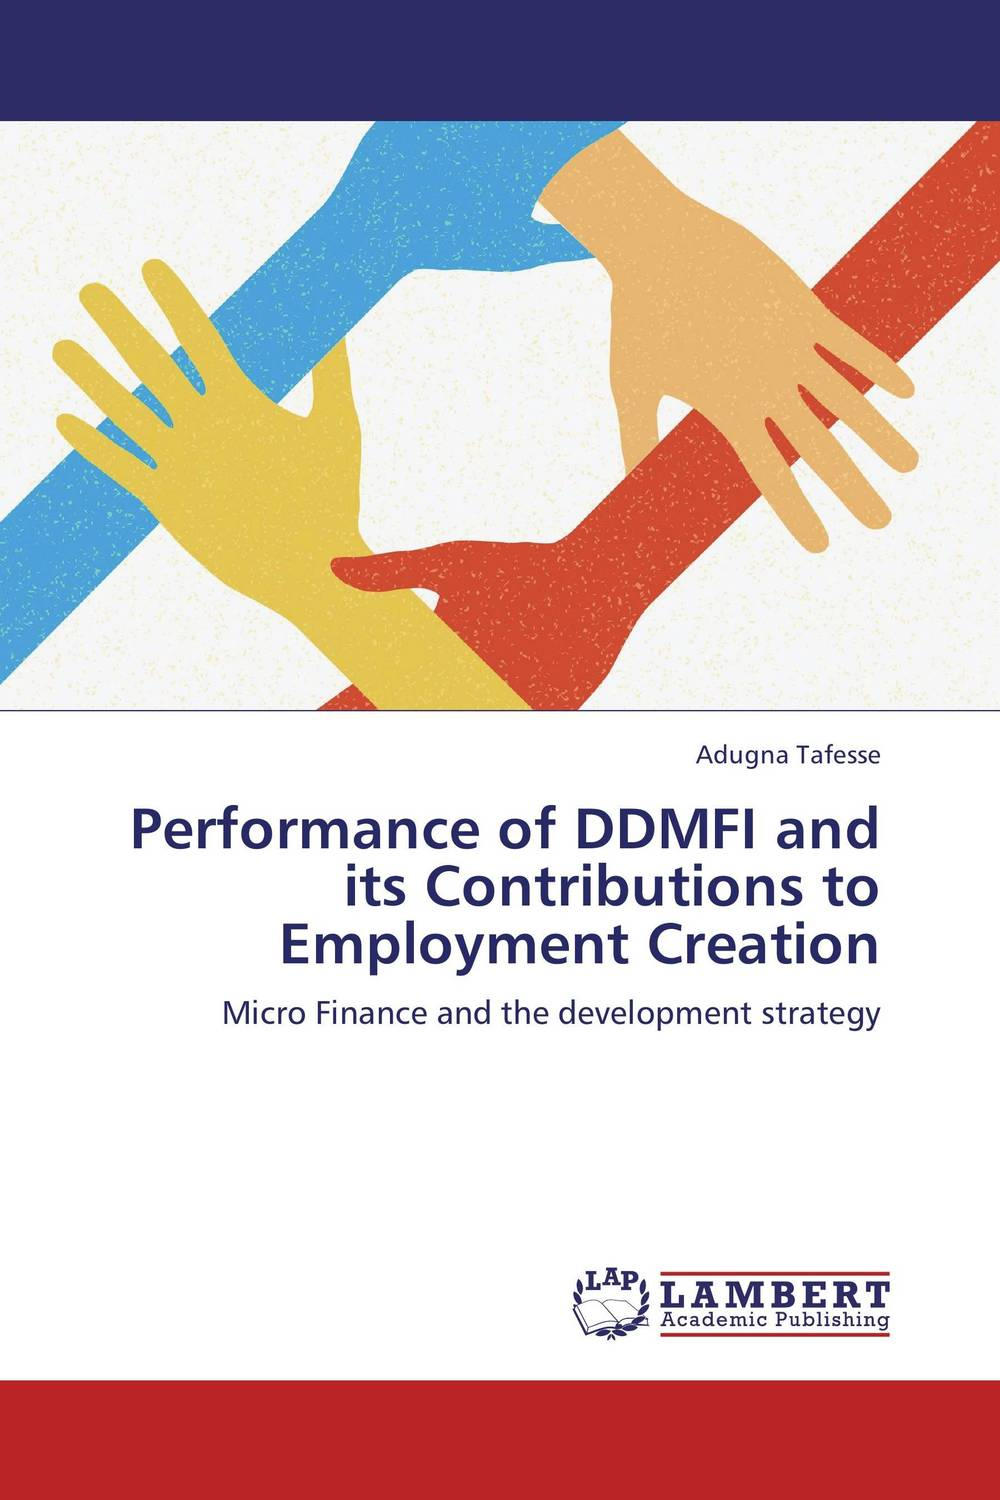 Performance of DDMFI and its Contributions to Employment Creation the life and contributions of negus mikael of wollo